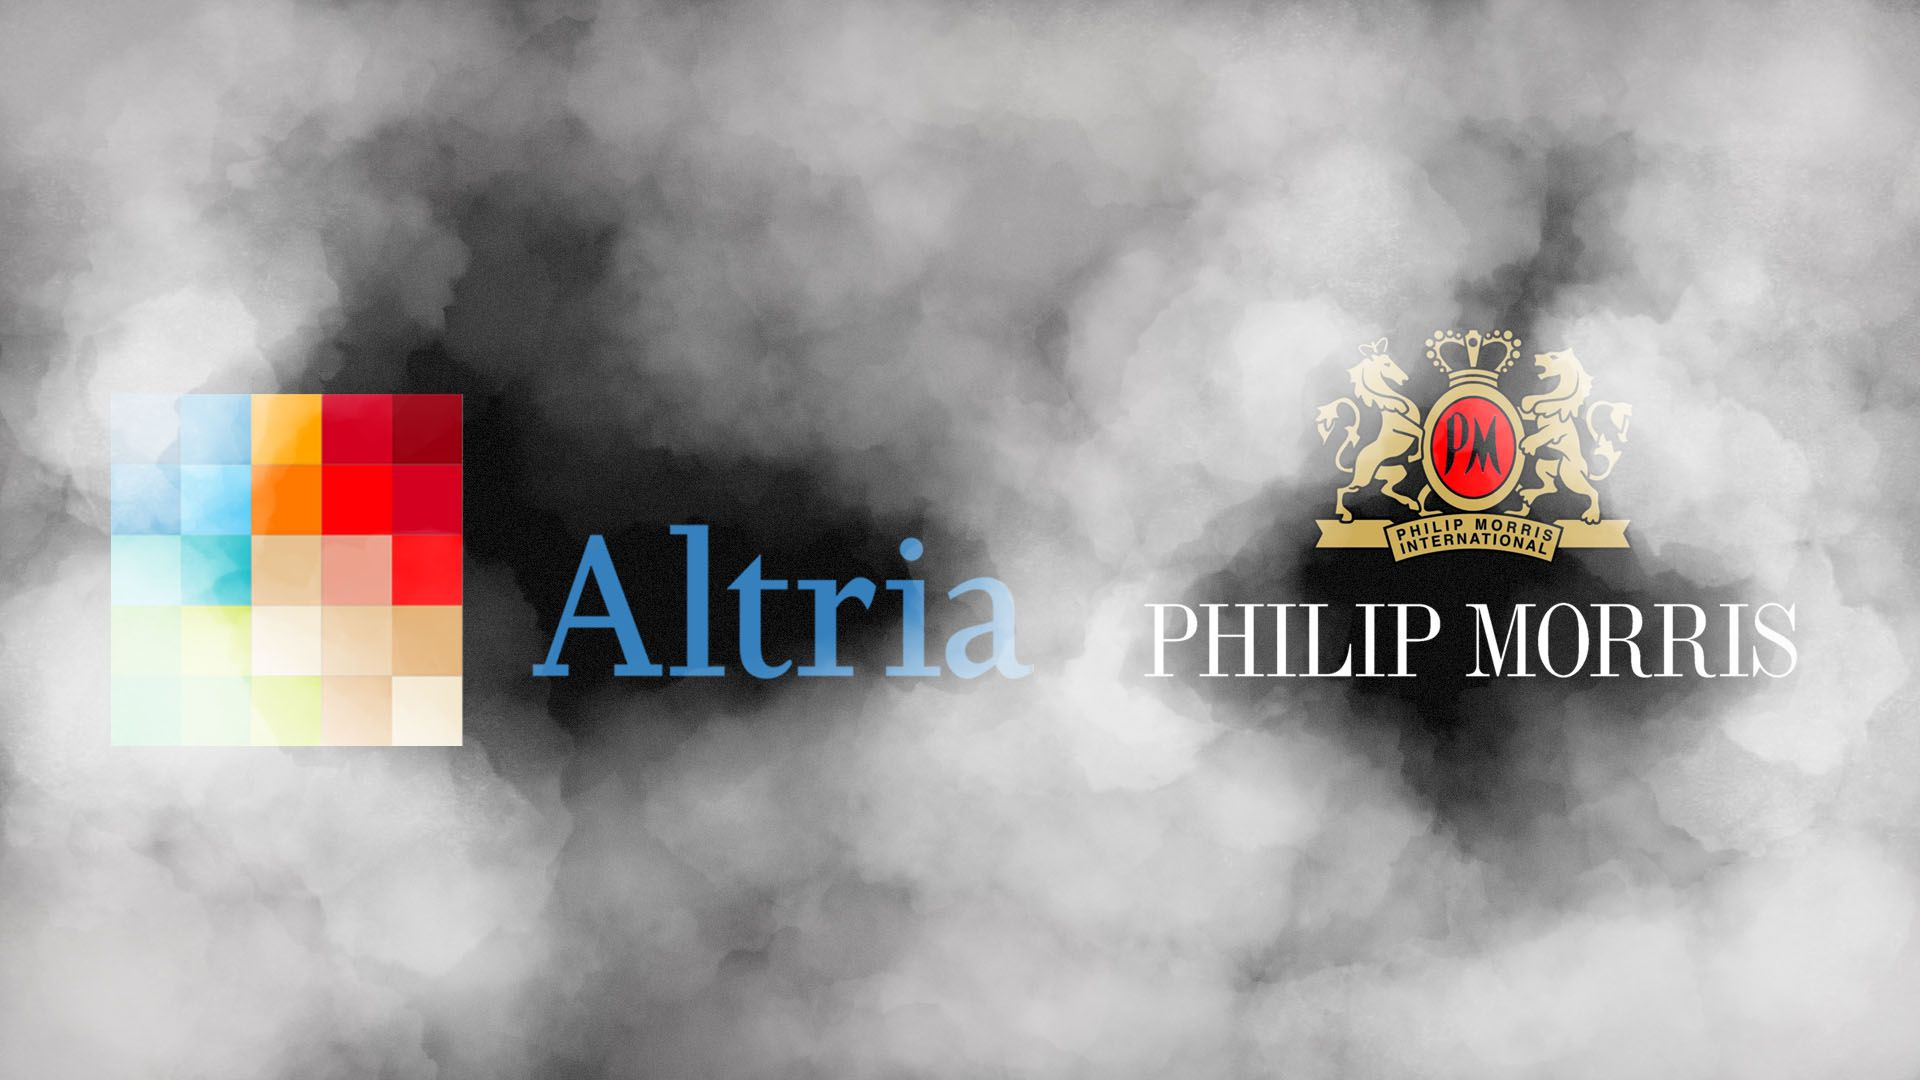 Illustration of the Phillip Morris and Altria logos lost in plume of vape smoke.